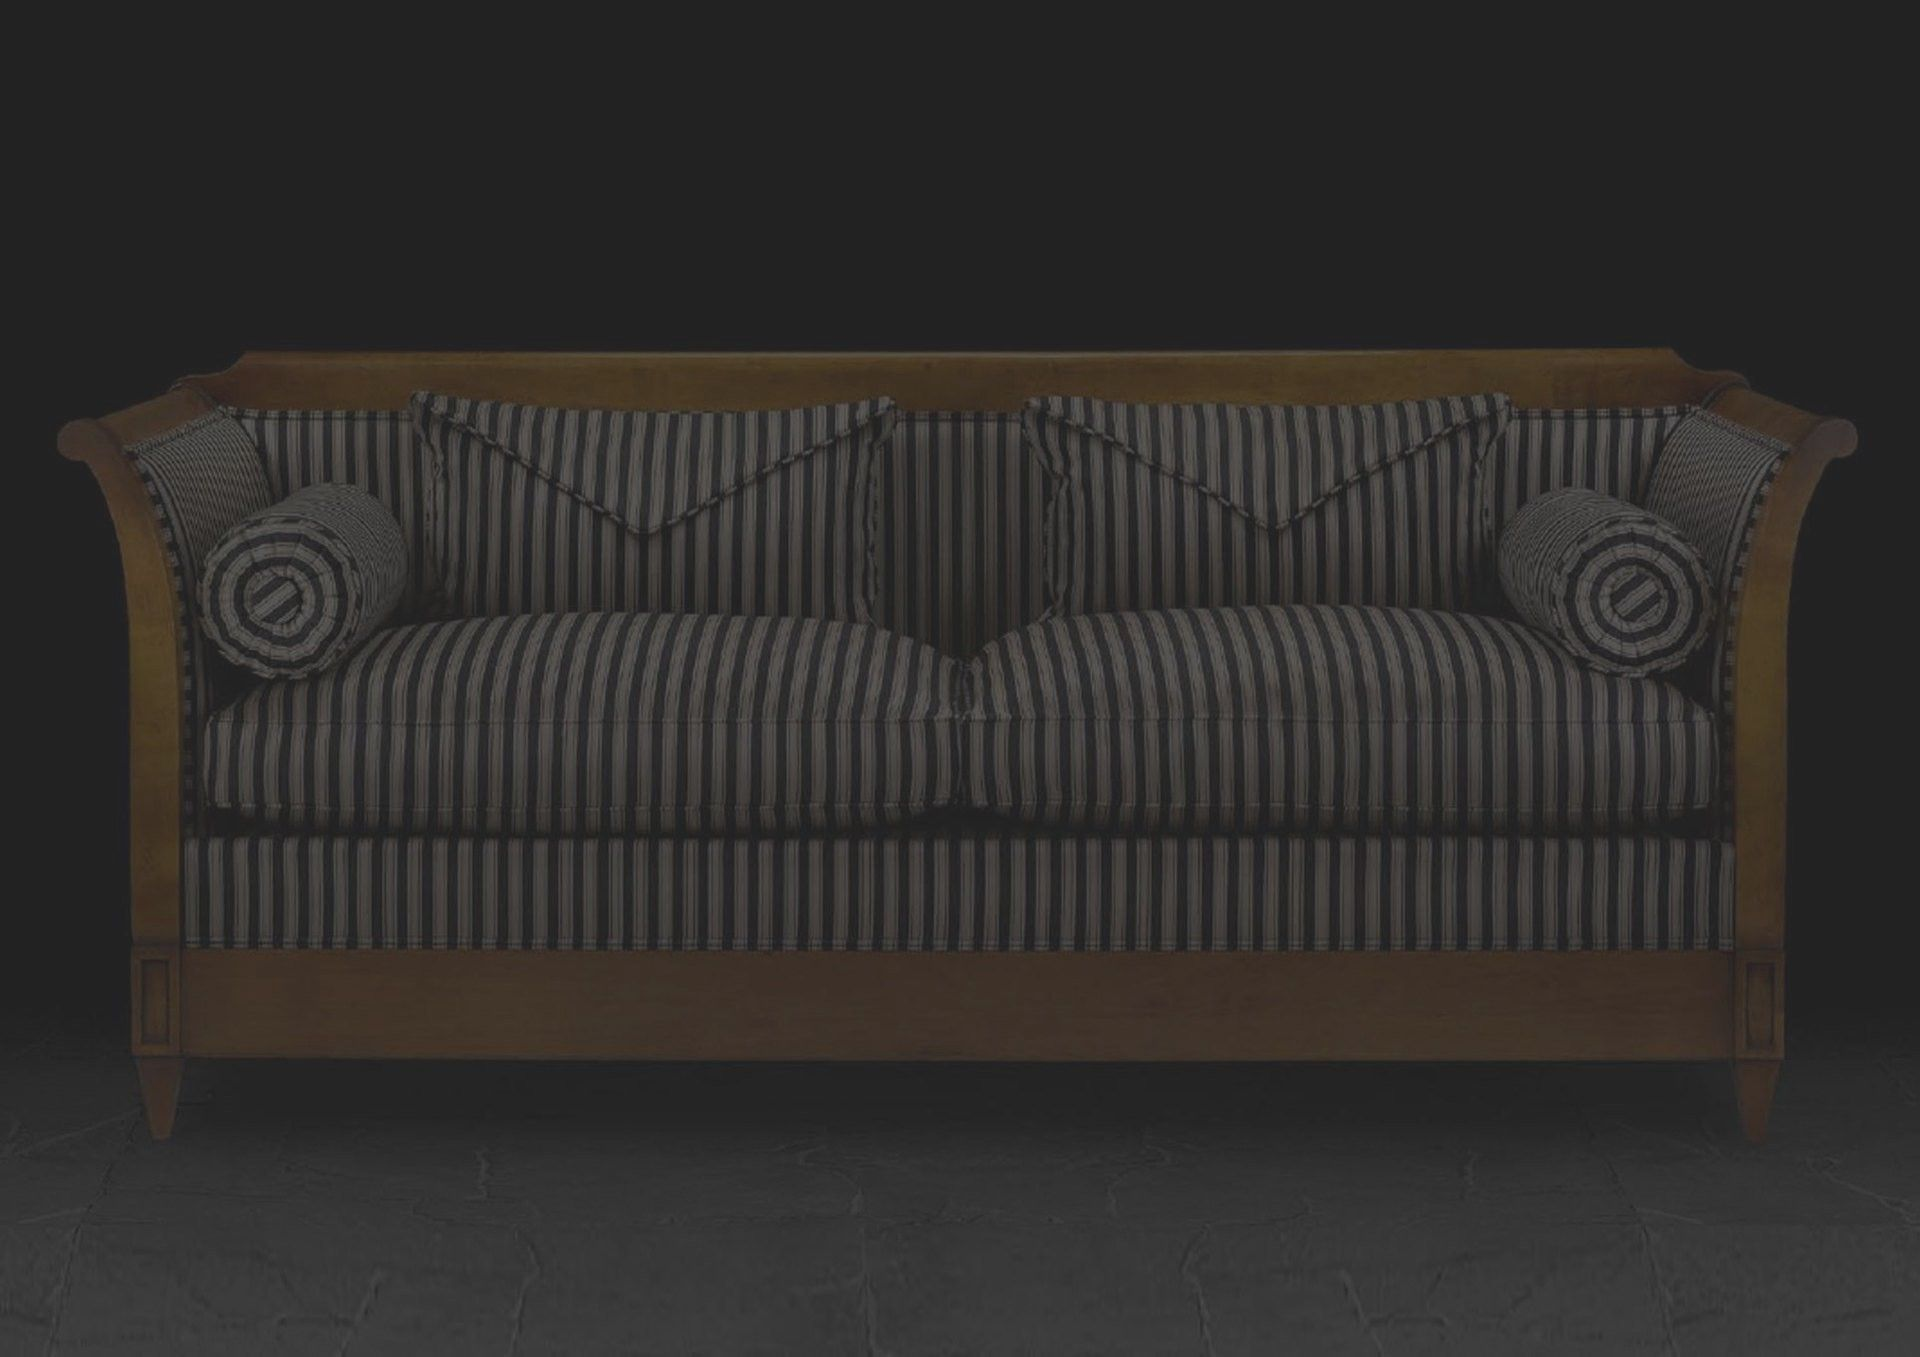 8 way hand tied sofa brands in canada wooden set philippines leather manufacturers